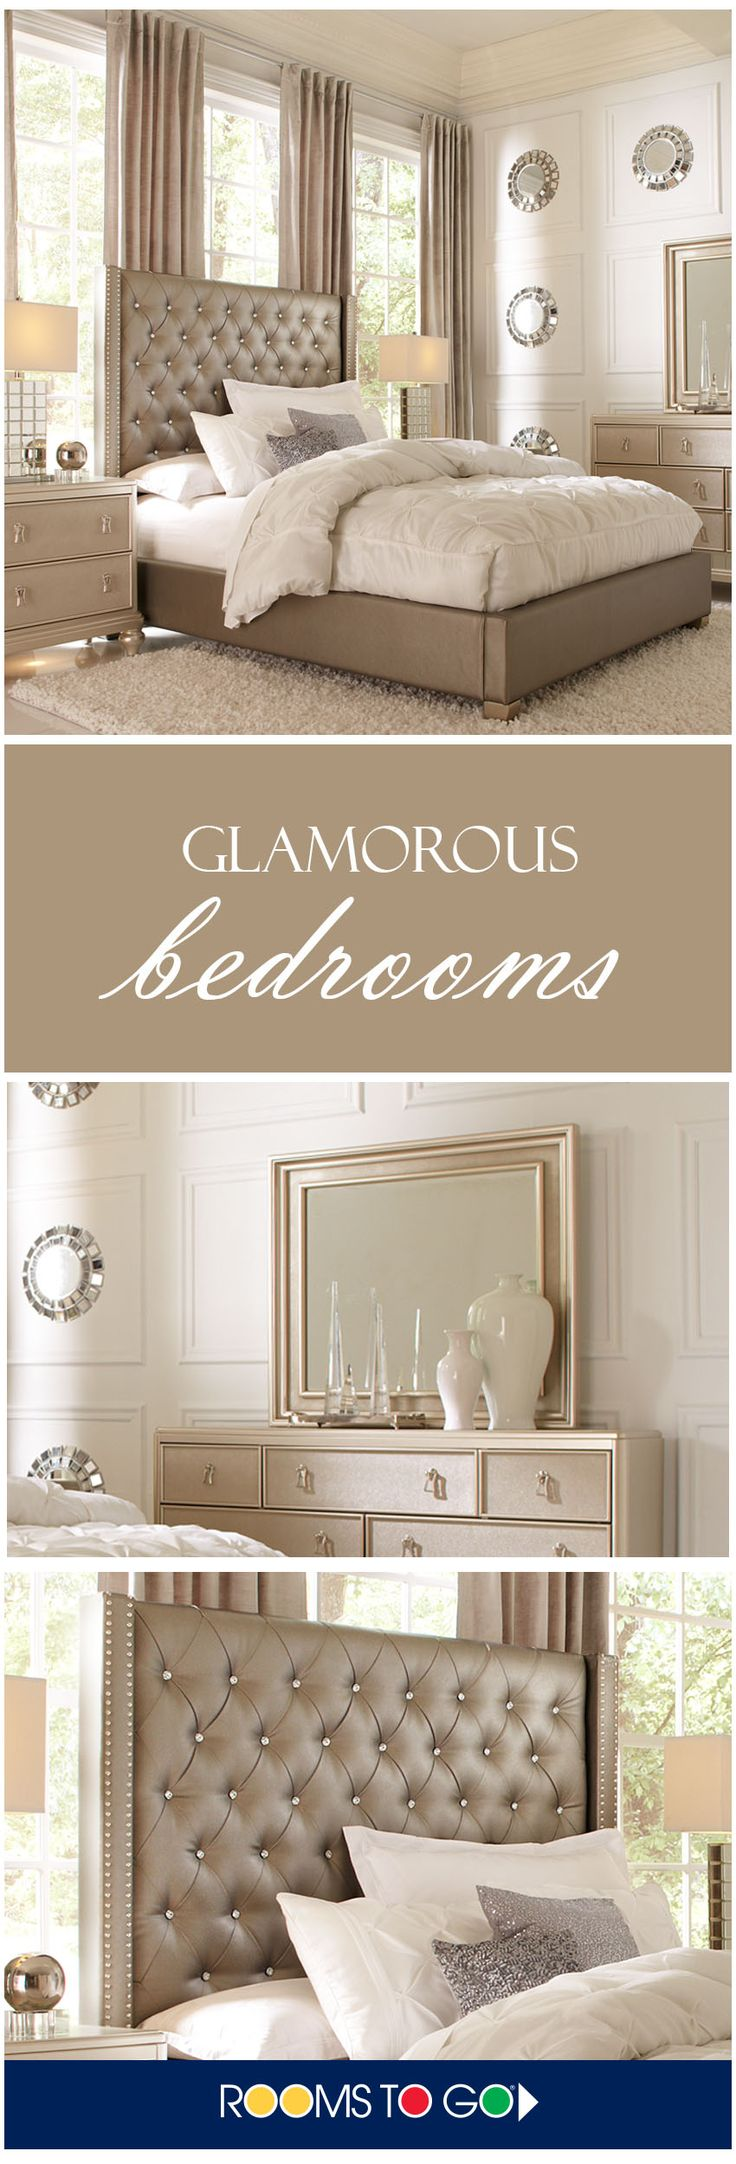 Bedroom colors brown and cream - Find This Pin And More On Dreamy Bedrooms